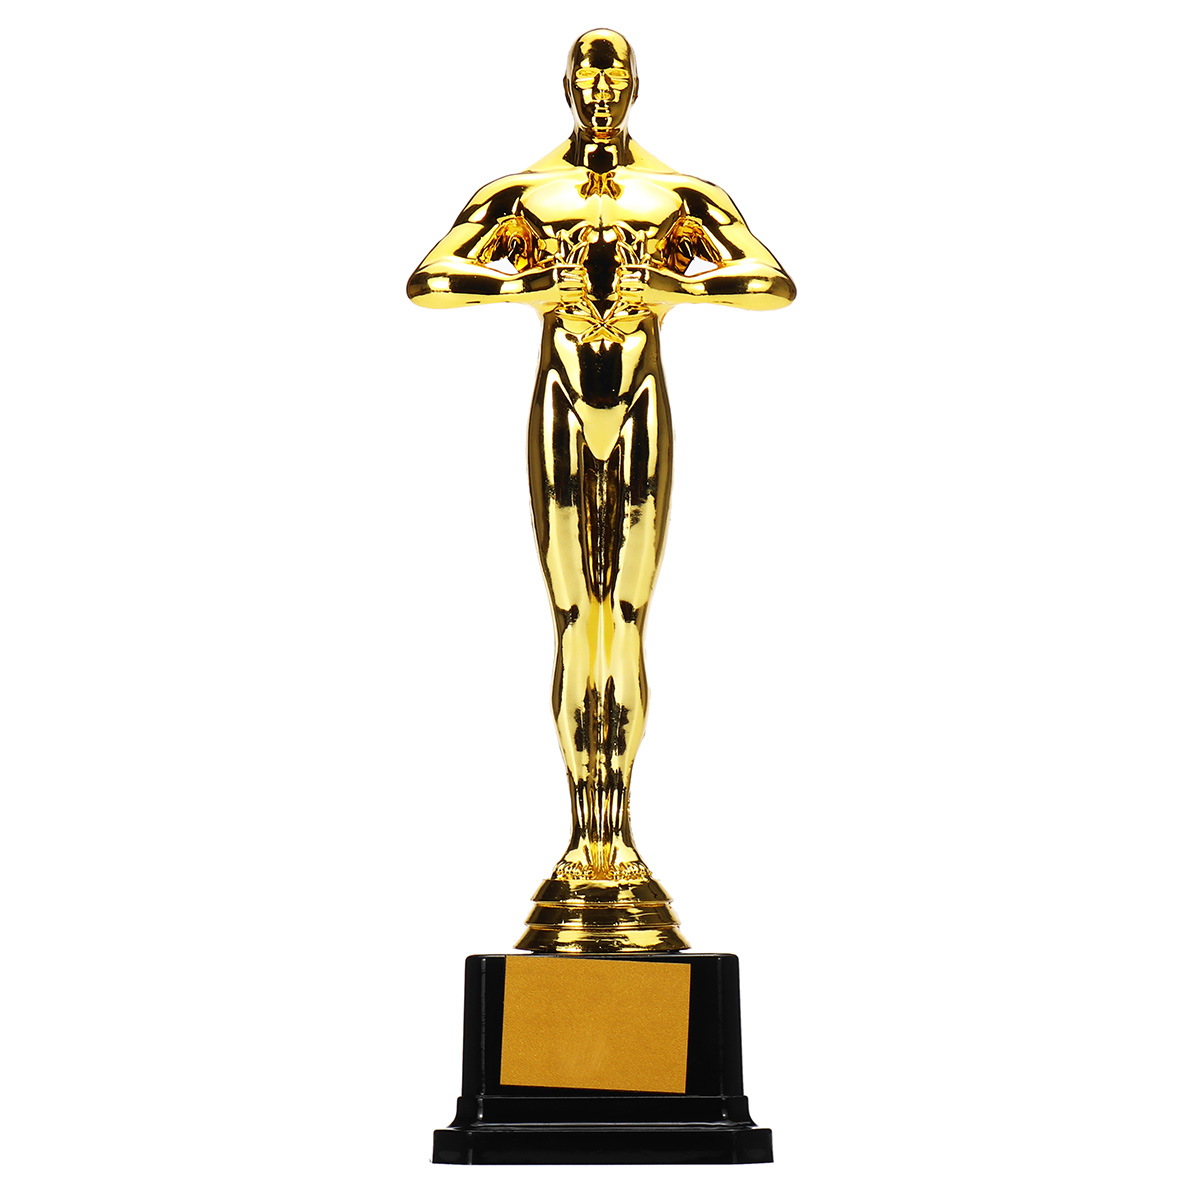 Oscar Trophy Awards Plastic Gold-Plated-Replica Team Sport Competition Craft Souvenirs Party Celebrations Gifts 18cm 21cm 26cm